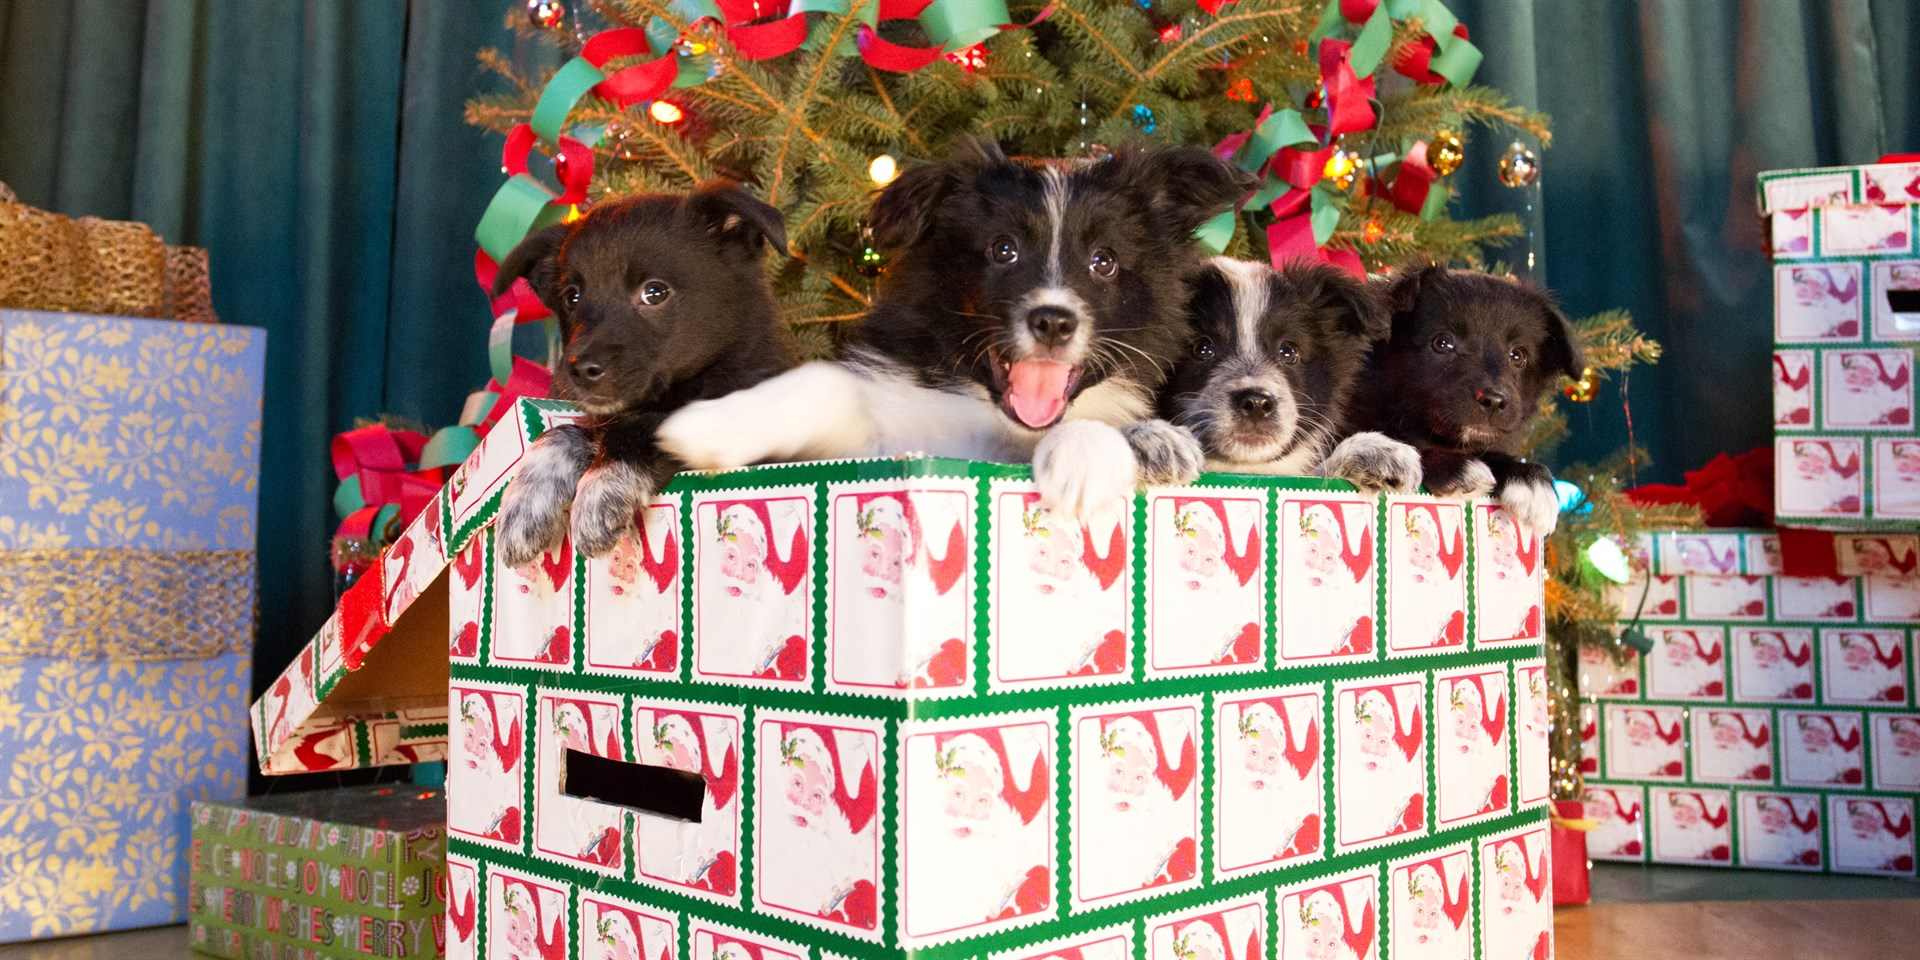 12 Dogs Of Christmas.Buy 12 Dogs Of Christmas Great Puppy Rescue Microsoft